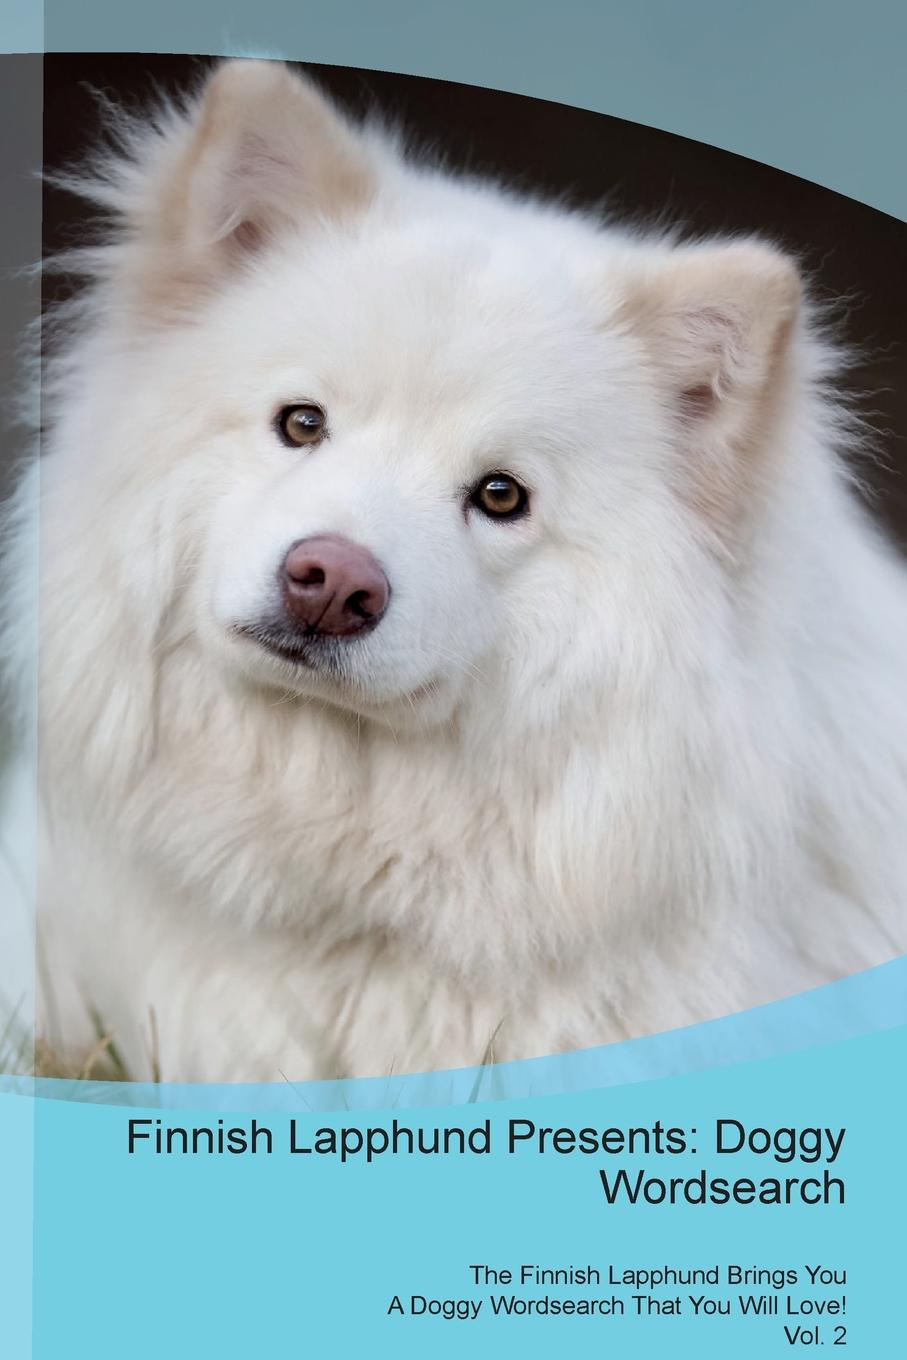 Doggy Puzzles Finnish Lapphund Presents. Wordsearch The Brings You A That Will Love! Vol. 2